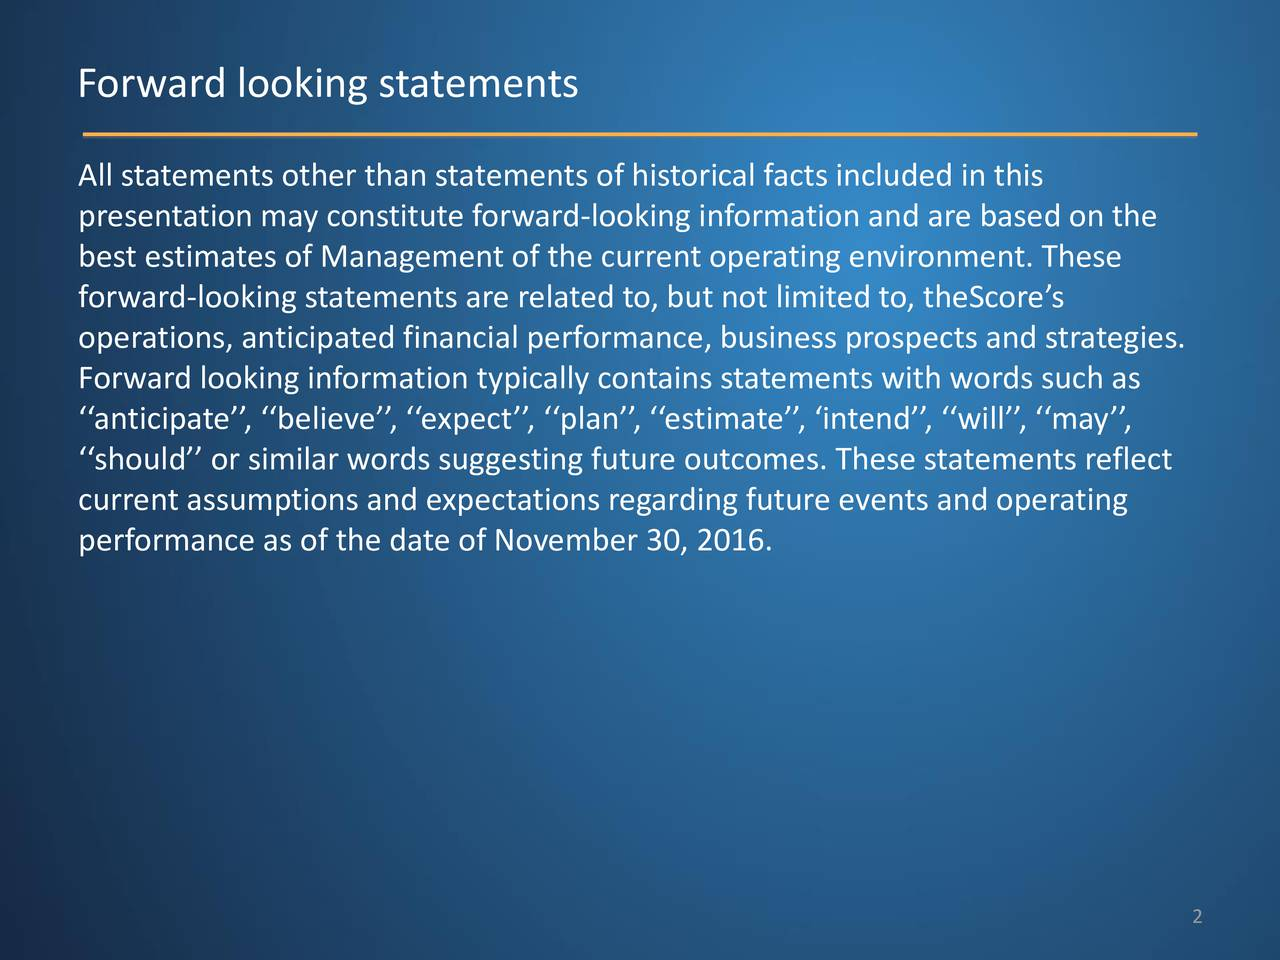 All statements other than statements of historical facts included in this presentation may constitute forward-looking information and are based on the best estimates of Management of the current operating environment. These forward-looking statements are related to, but not limited to, theScore s operations, anticipated financial performance, business prospects and strategies. Forward looking information typically contains statements with words such as anticipate , believe , expect , plan , estimate , intend , will , may , should or similar words suggesting future outcomes. These statements reflect current assumptions and expectations regarding future events and operating performance as of the date of November 30, 2016. 2